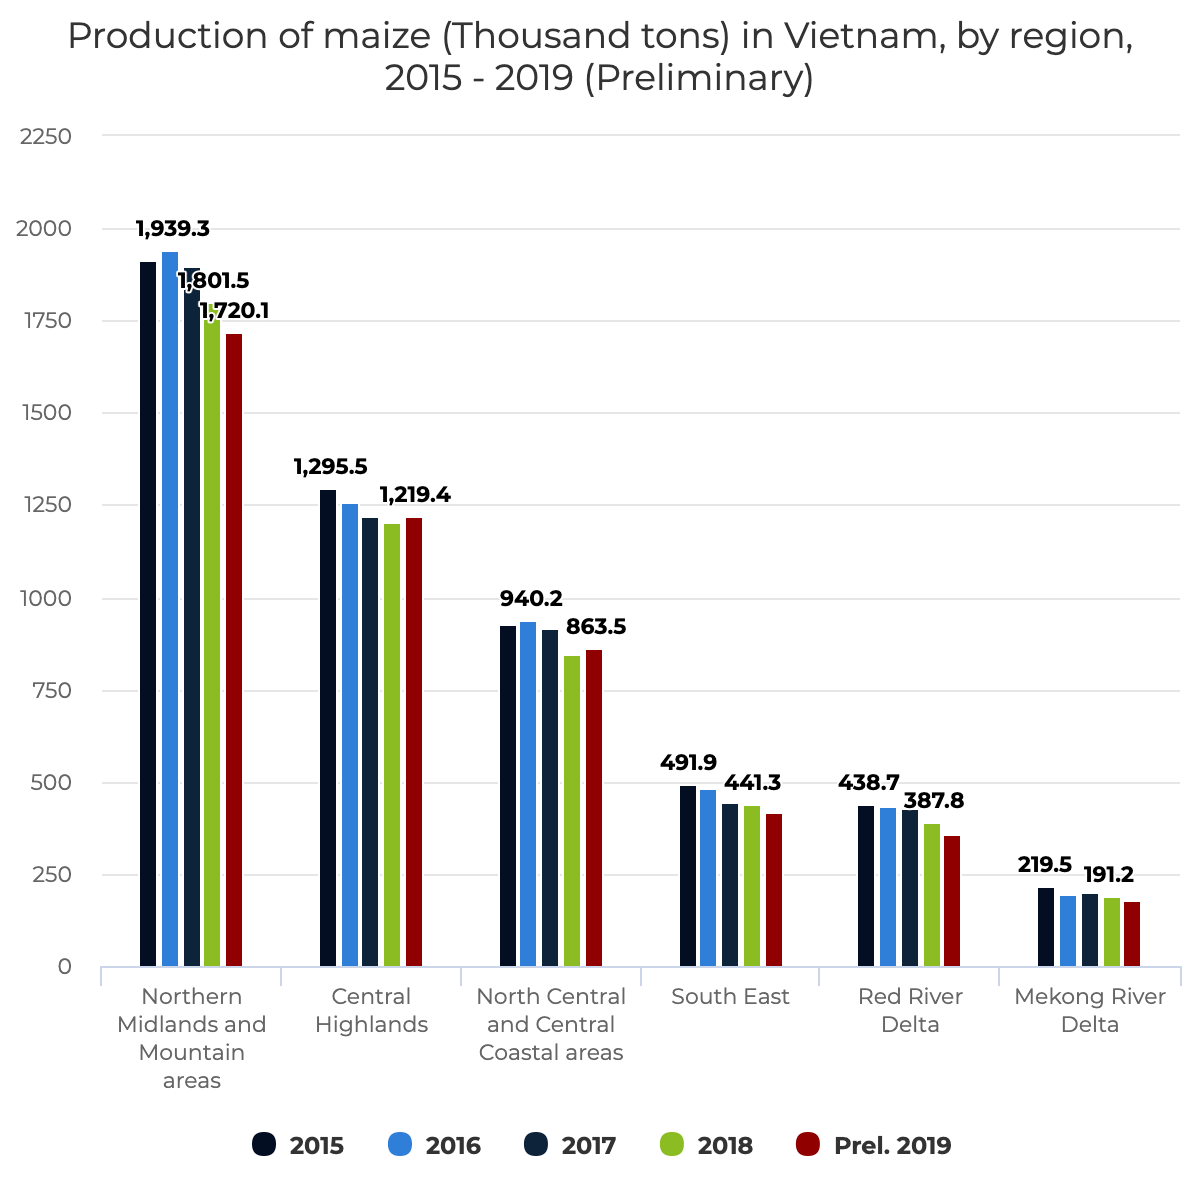 Production of maize (Thousand tons) in Vietnam, by region, 2015 – 2019 (Preliminary)